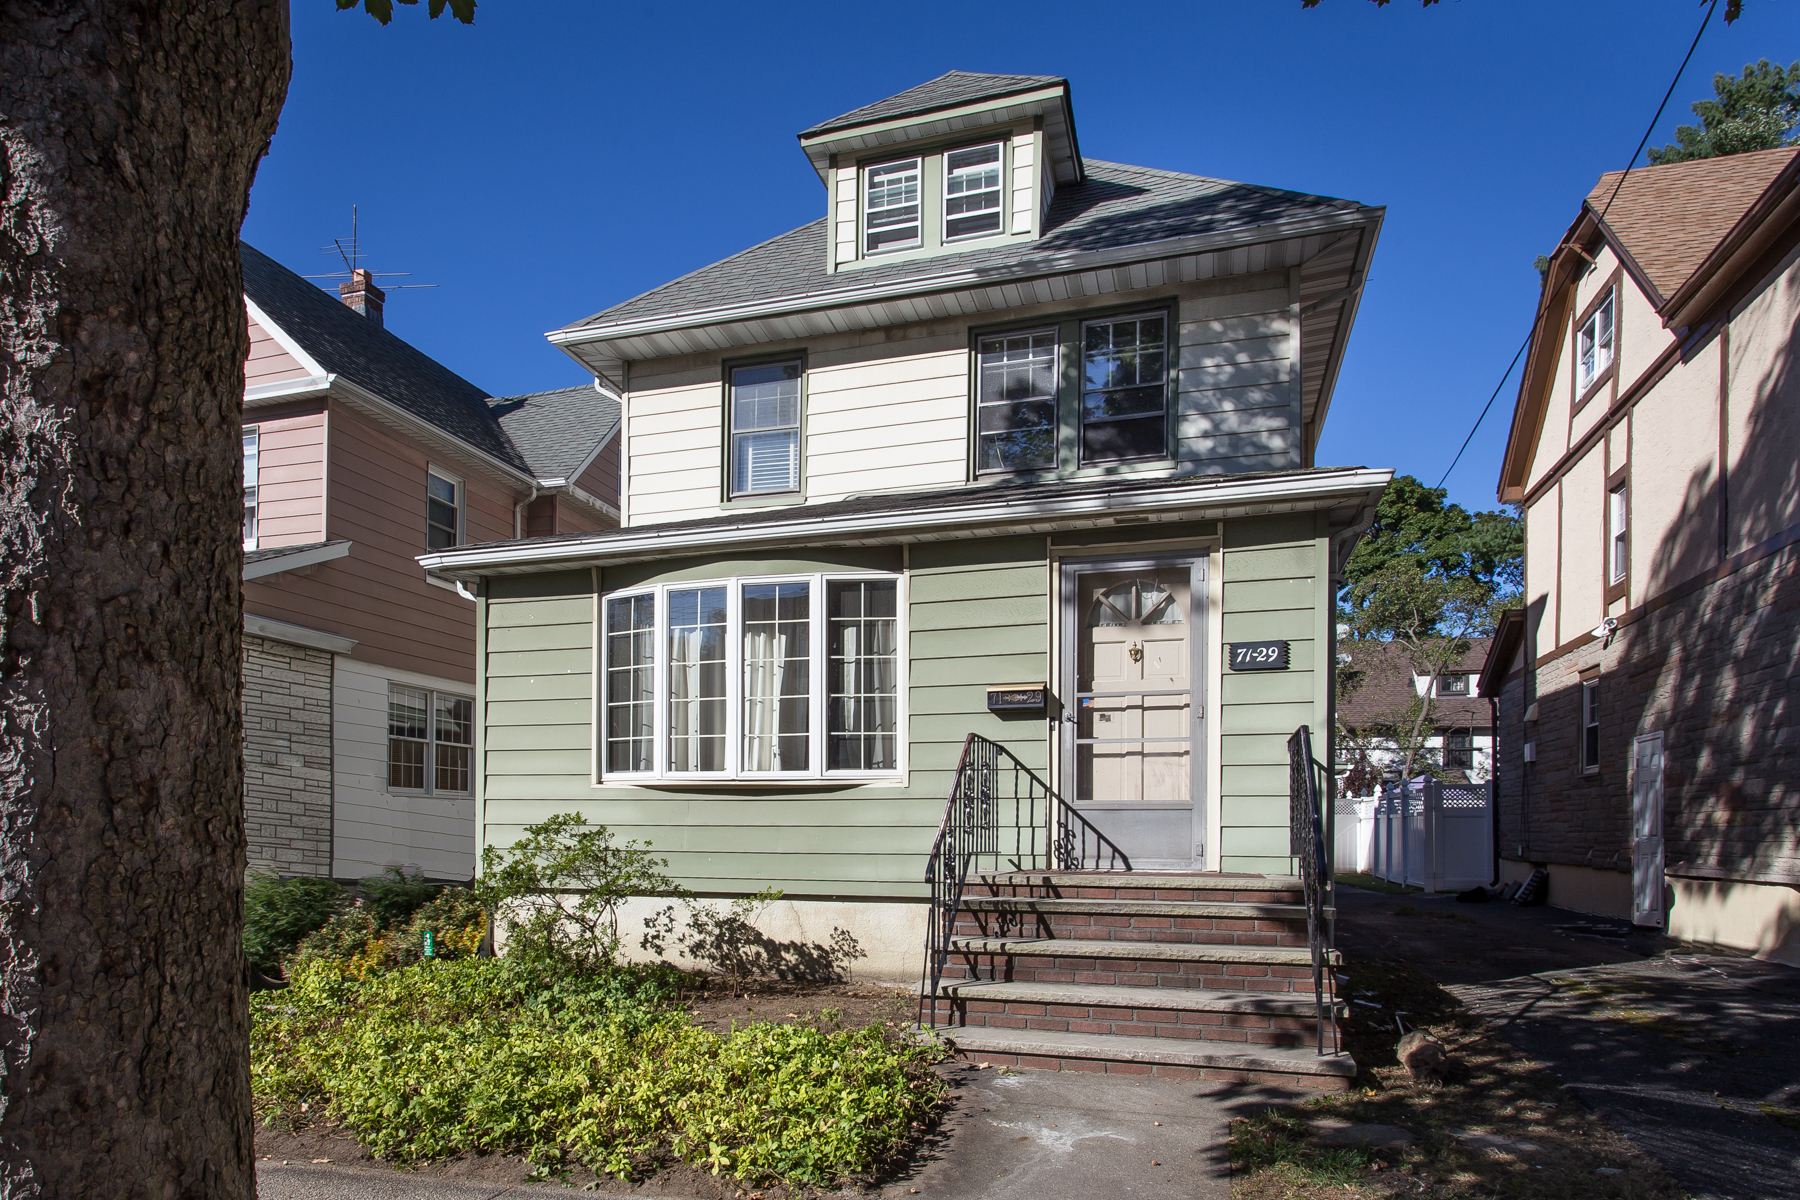 """Single Family Home for Sale at """"DESIGN YOUR DREAM HOME"""" 71-29 Kessel Street, Forest Hills, New York 11375 United States"""